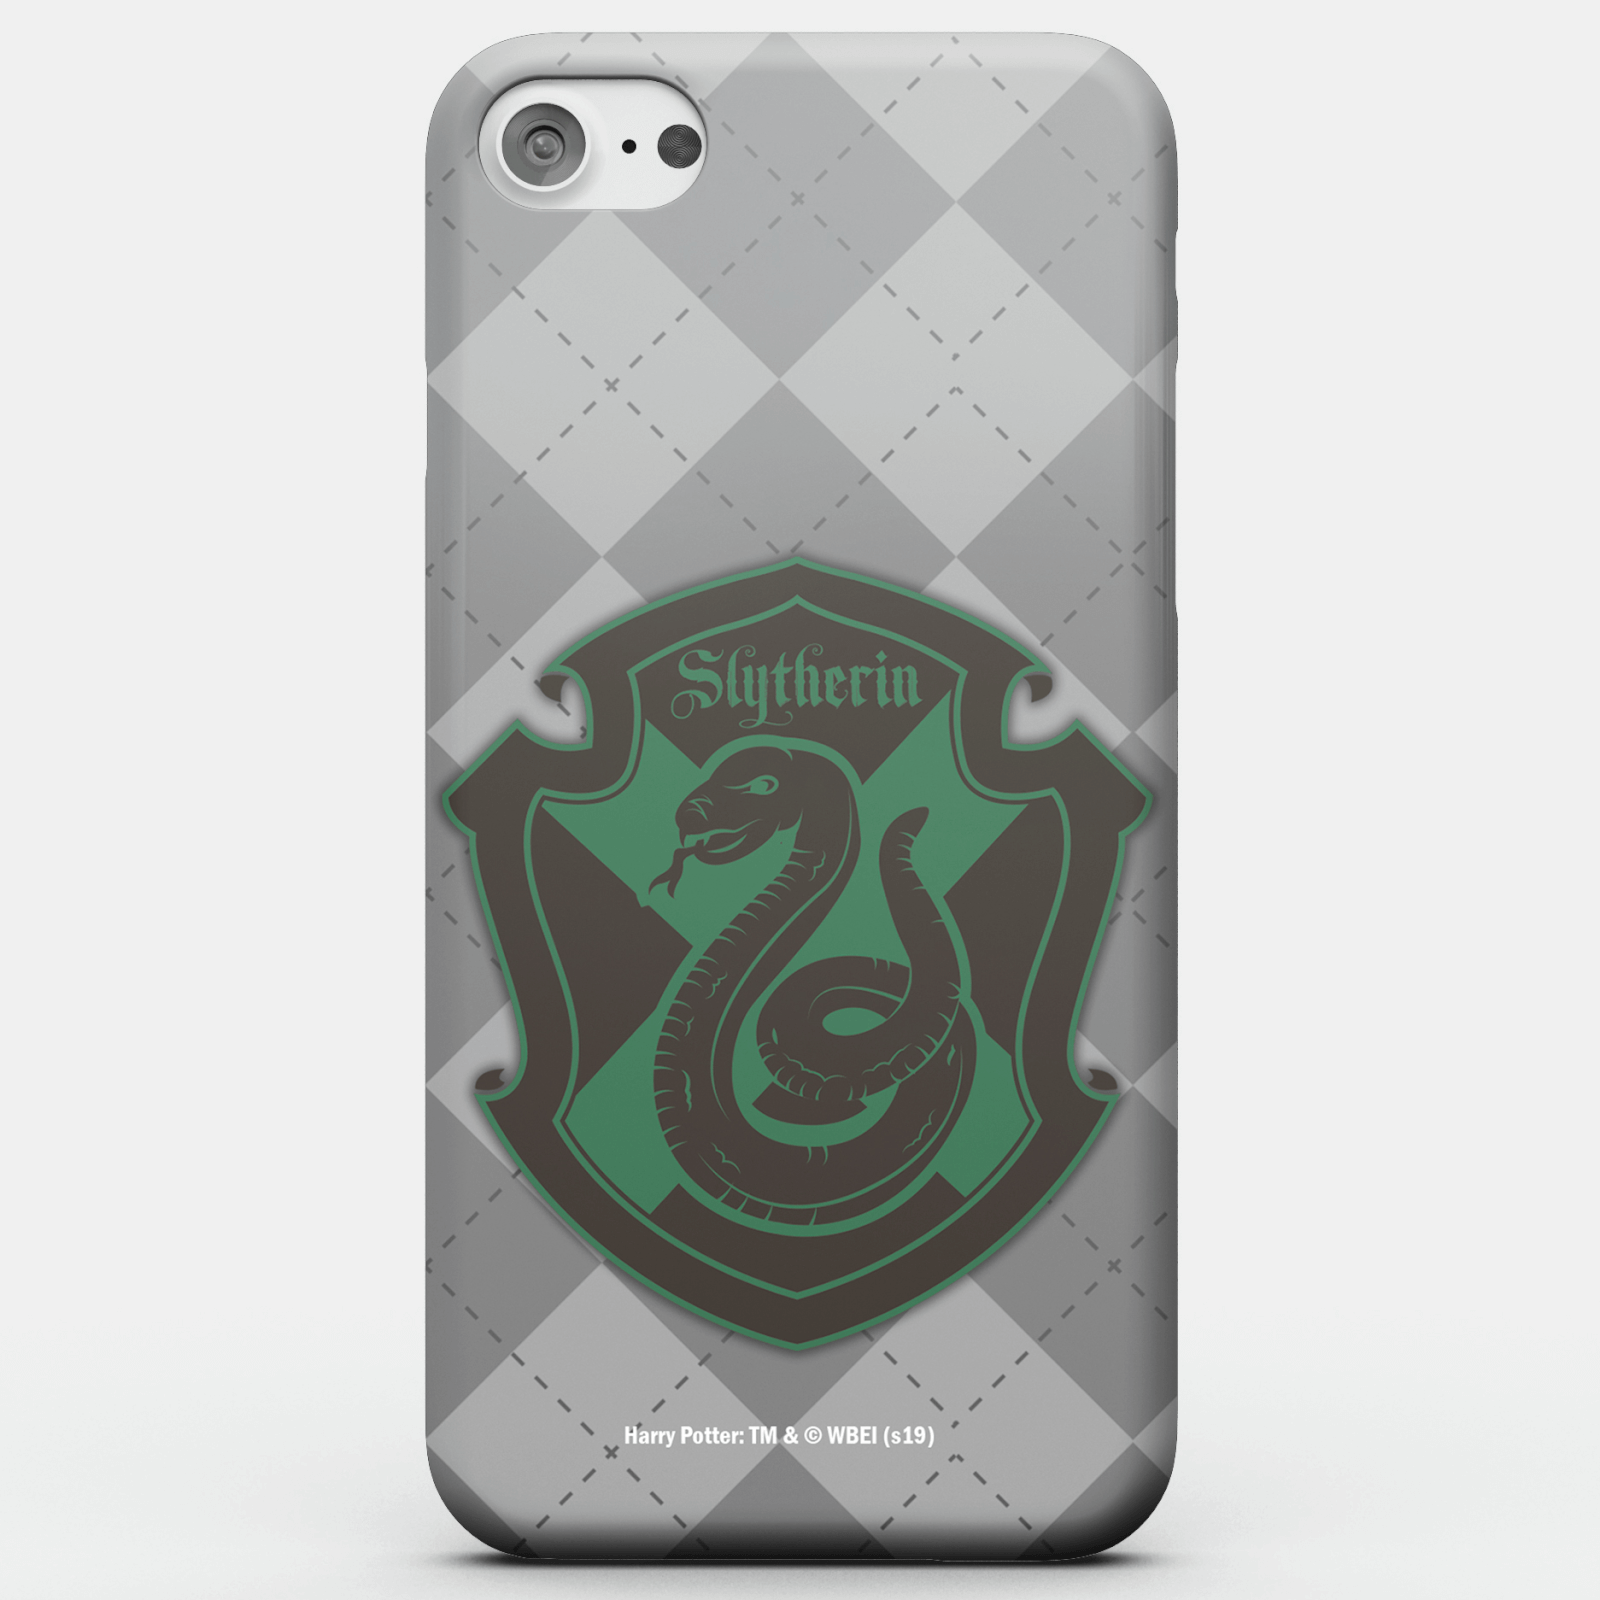 Funda Móvil Harry Potter Slytherin Crest para iPhone y Android - iPhone 6S - Carcasa rígida - Mate de Harry Potter